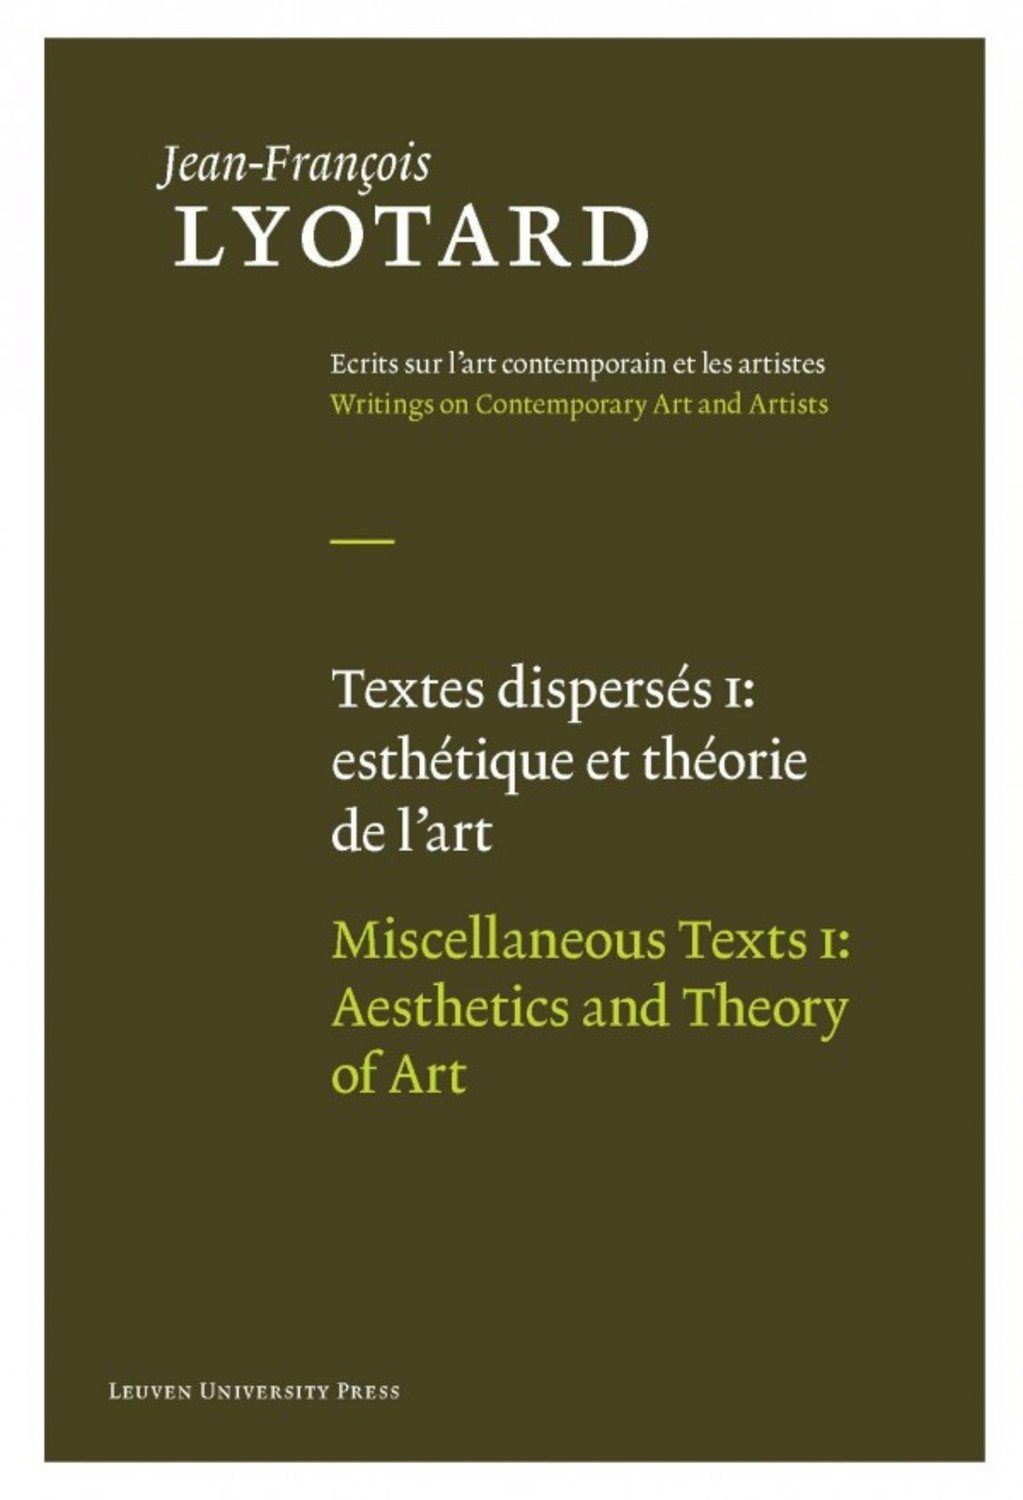 Textes dispersés I: esthétique et théorie de l'art / Miscellaneous Texts I: Aesthetics and Theory of Art